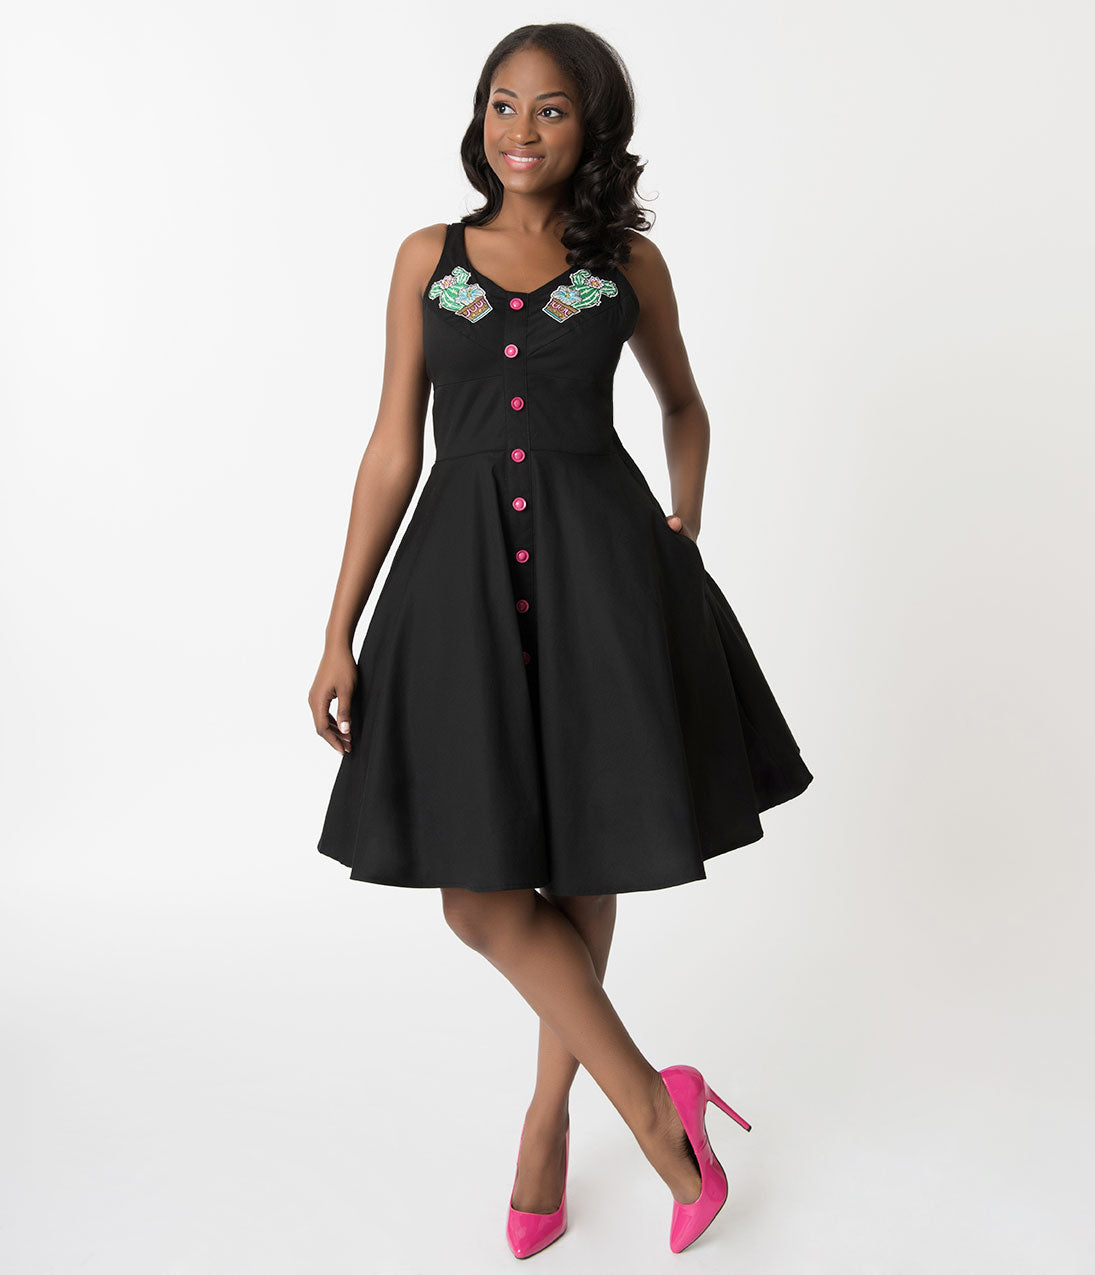 Rockabilly Dresses | Rockabilly Clothing | Viva Las Vegas Hell Bunny Black  Hatiora Cactus Embroidered Cotton Swing Dress $82.00 AT vintagedancer.com